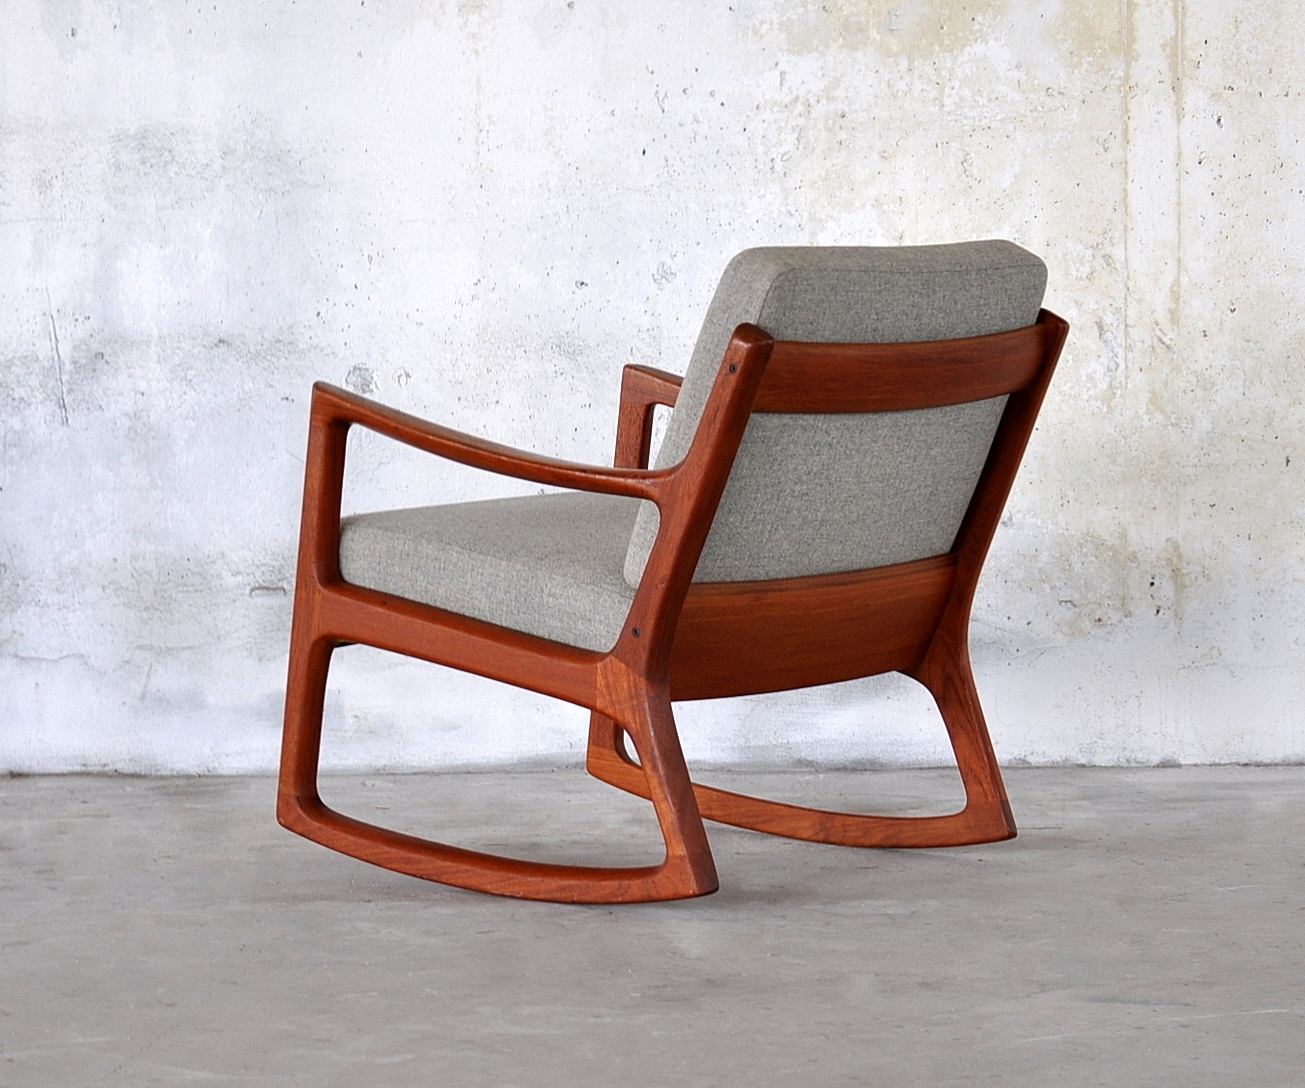 Contemporary Rocking Chair Uk — All Contemporary Design : Unique Within Modern Patio Rocking Chairs (View 7 of 15)